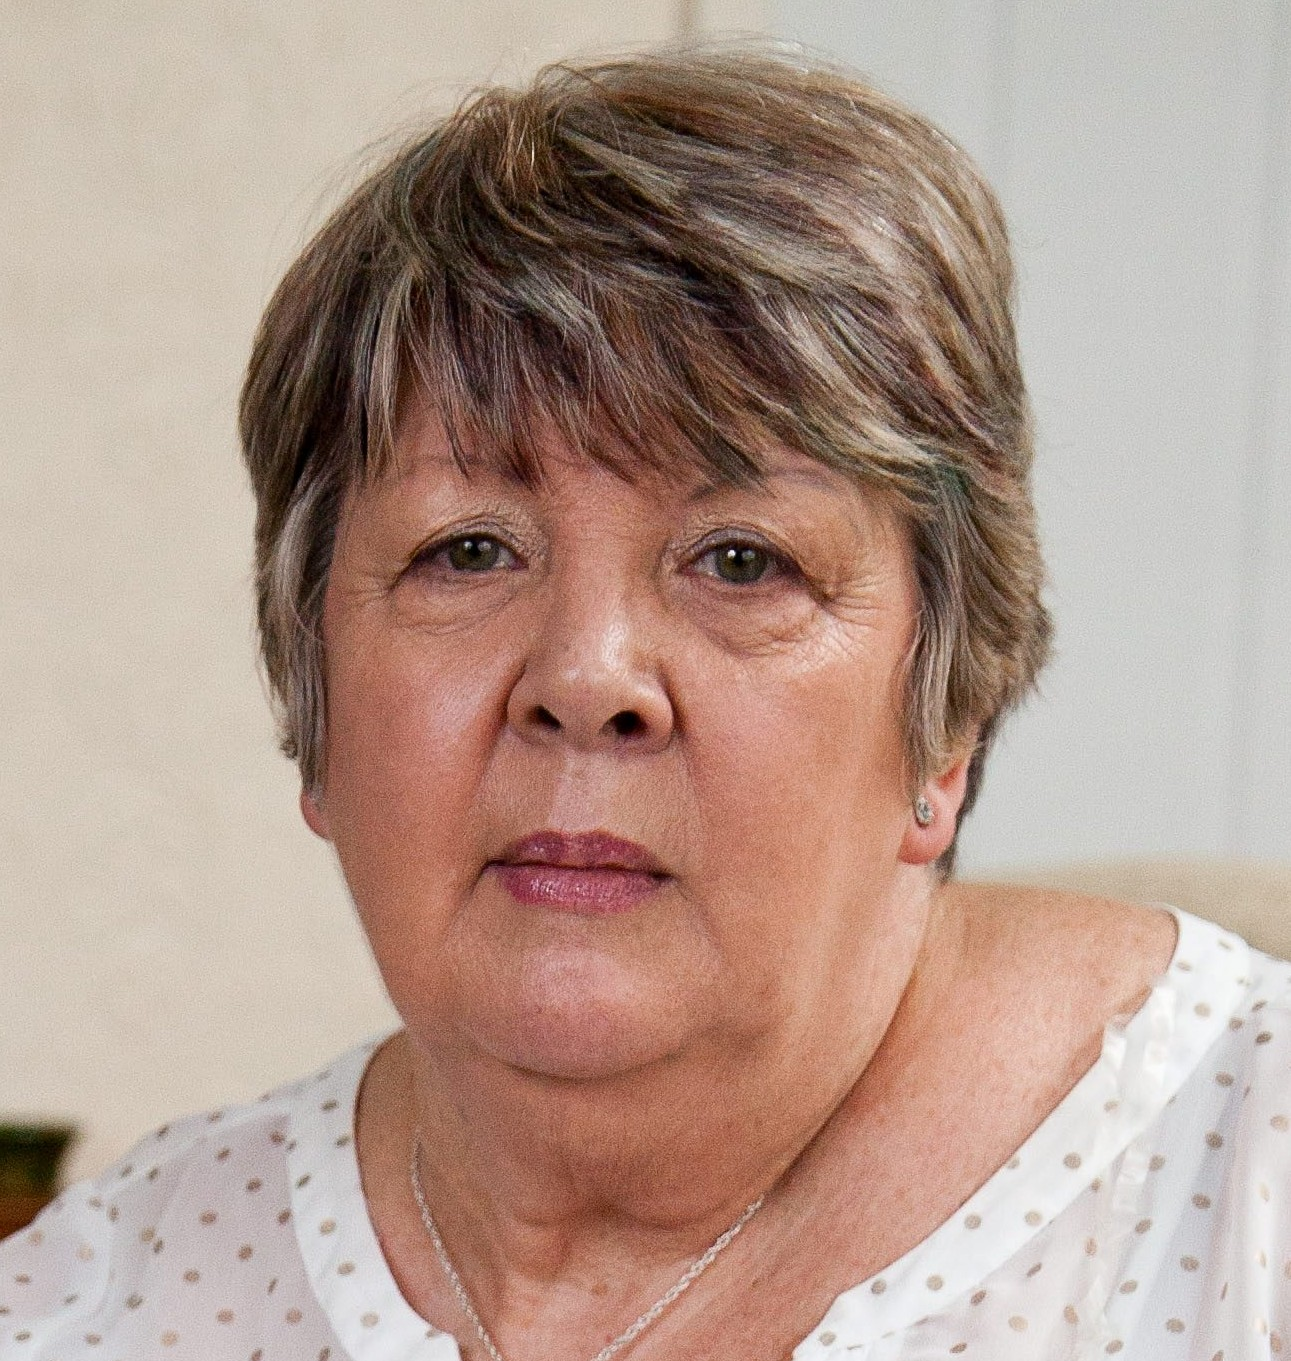 Linda Lea was injured in a hot air balloon crash in Luxor four years ago similar to the one that killed two British tourists today